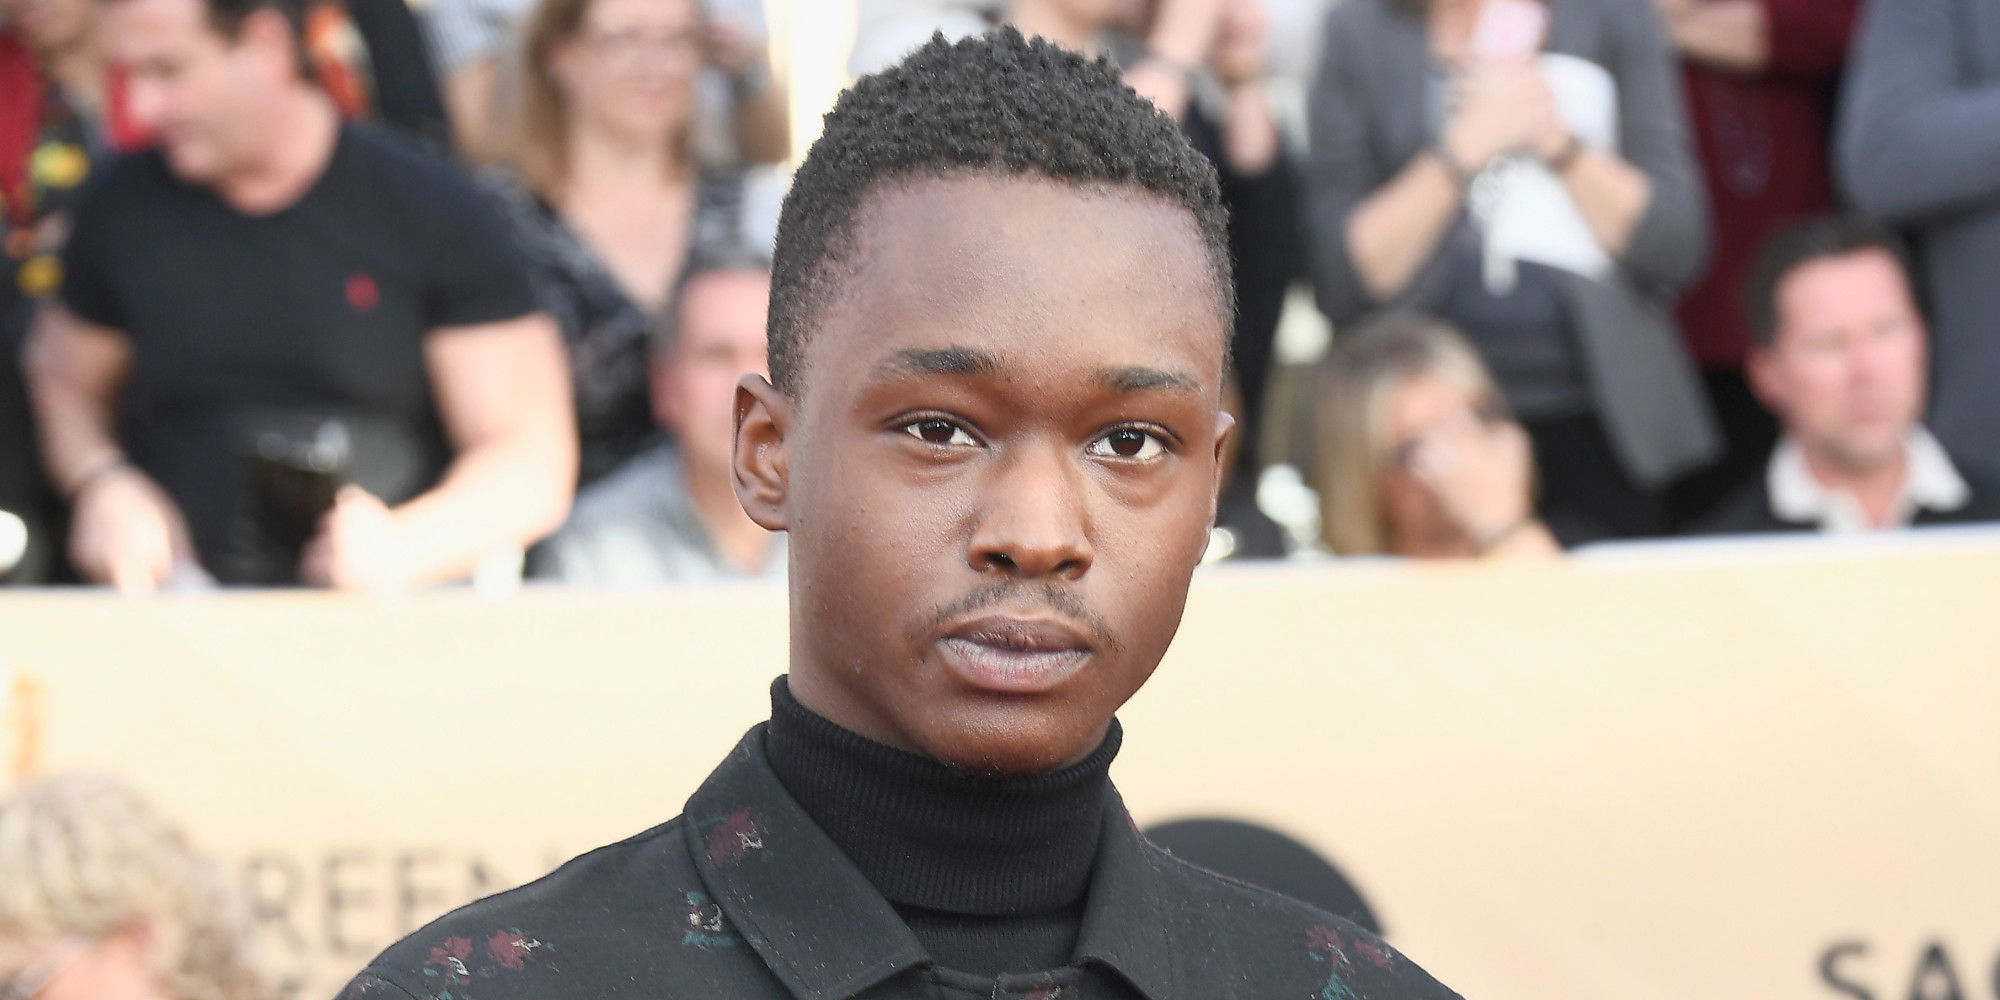 ashton sanders cdashton sanders age, ashton sanders style, ashton sanders wiki, ashton sanders wonderland, ashton sanders wikipedia, ashton sanders instagram, ashton sanders biography, ashton sanders facebook, ashton sanders height, ashton sanders, эштон сандерс, ashton sanders millions, sunday best ashford sanders, ashton sanders swindon, ashton sanders millions didn't make it, ashton sanders baton rouge, ashton sanders straight outta compton, ashton sanders the retrieval, ashton sanders cd, ashton sanders orlando magic